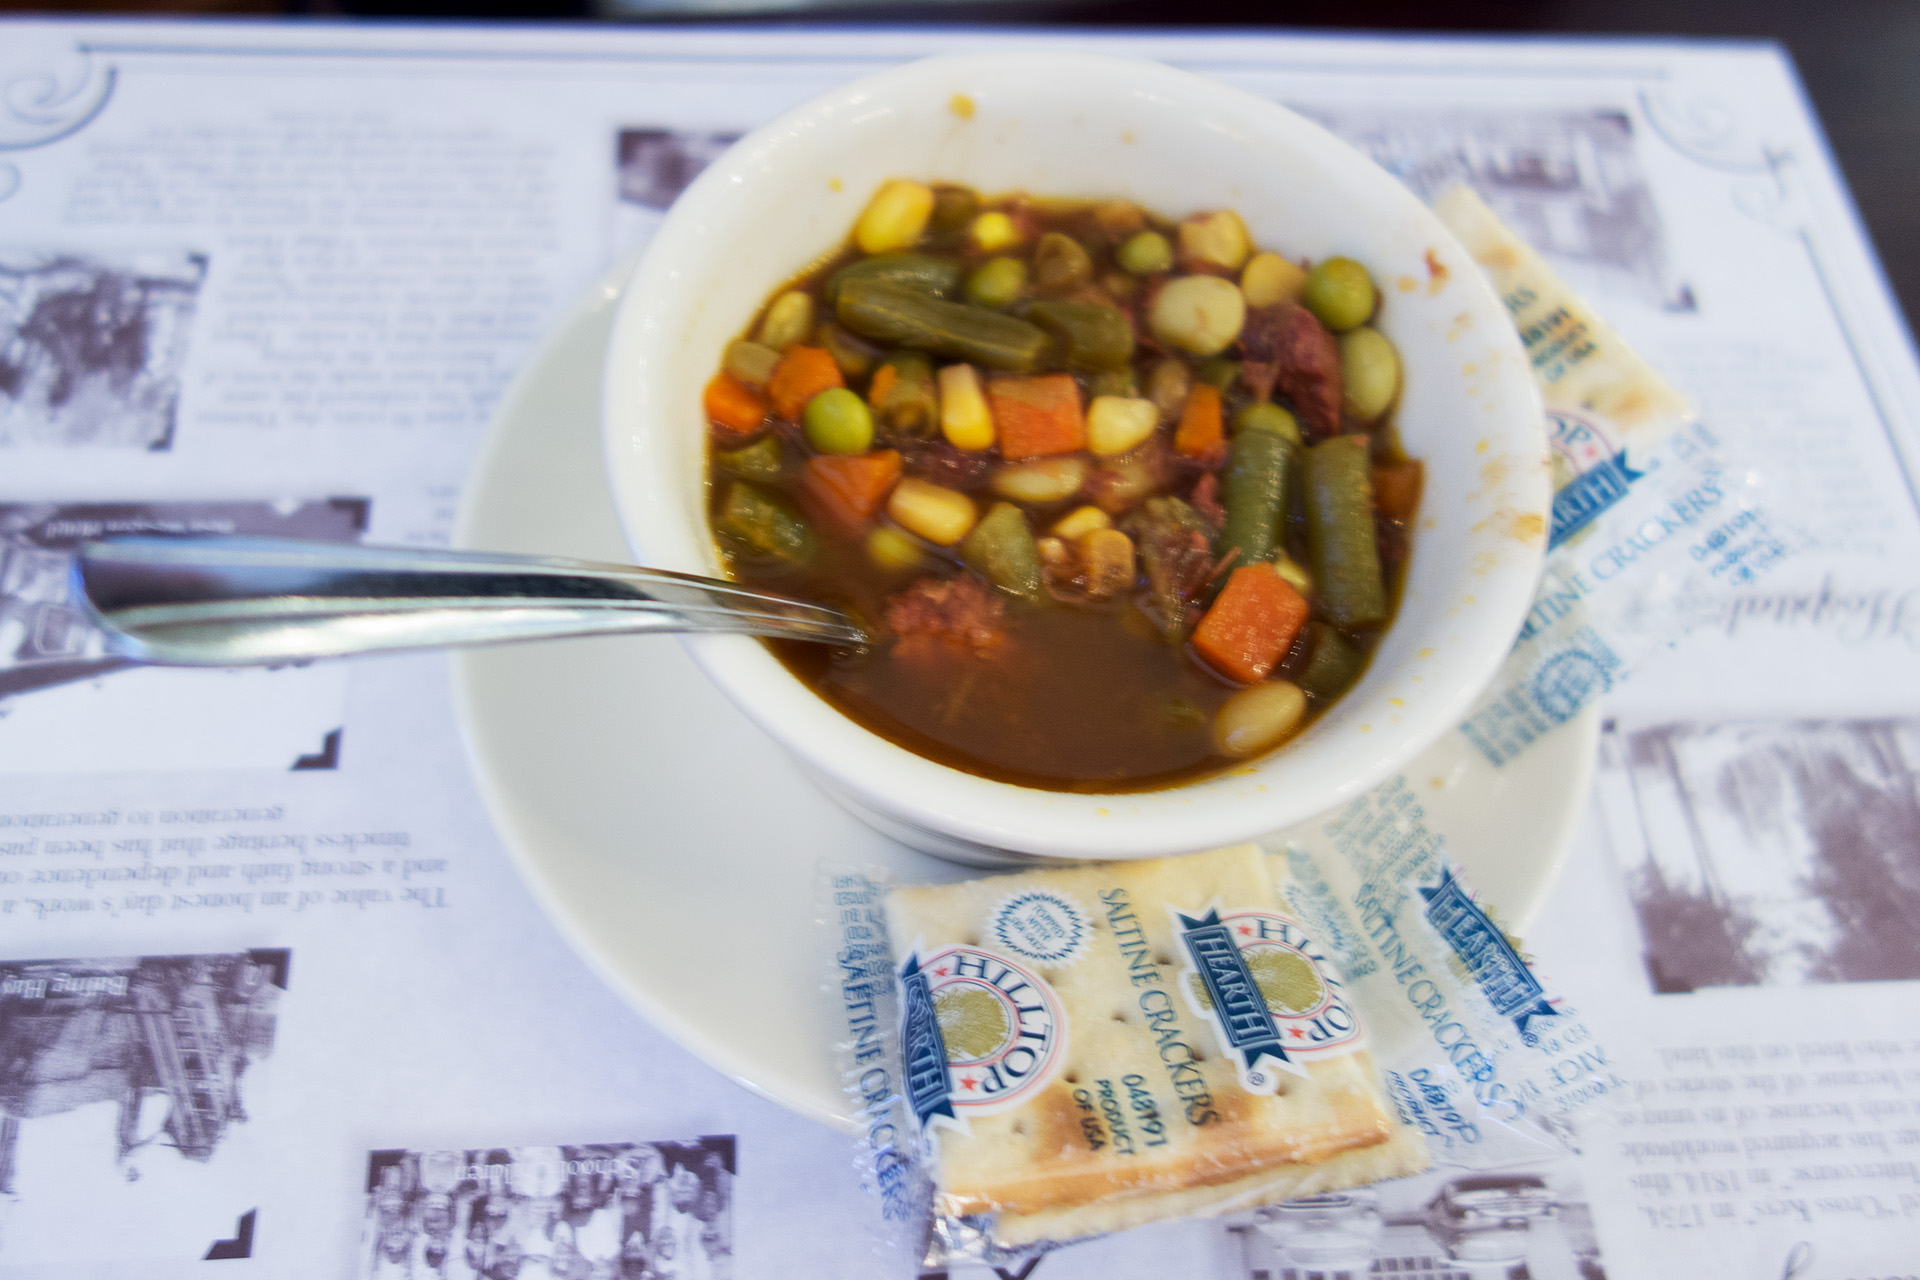 The best vegetable soup Heather has ever had, Olde Mill Restaurant.